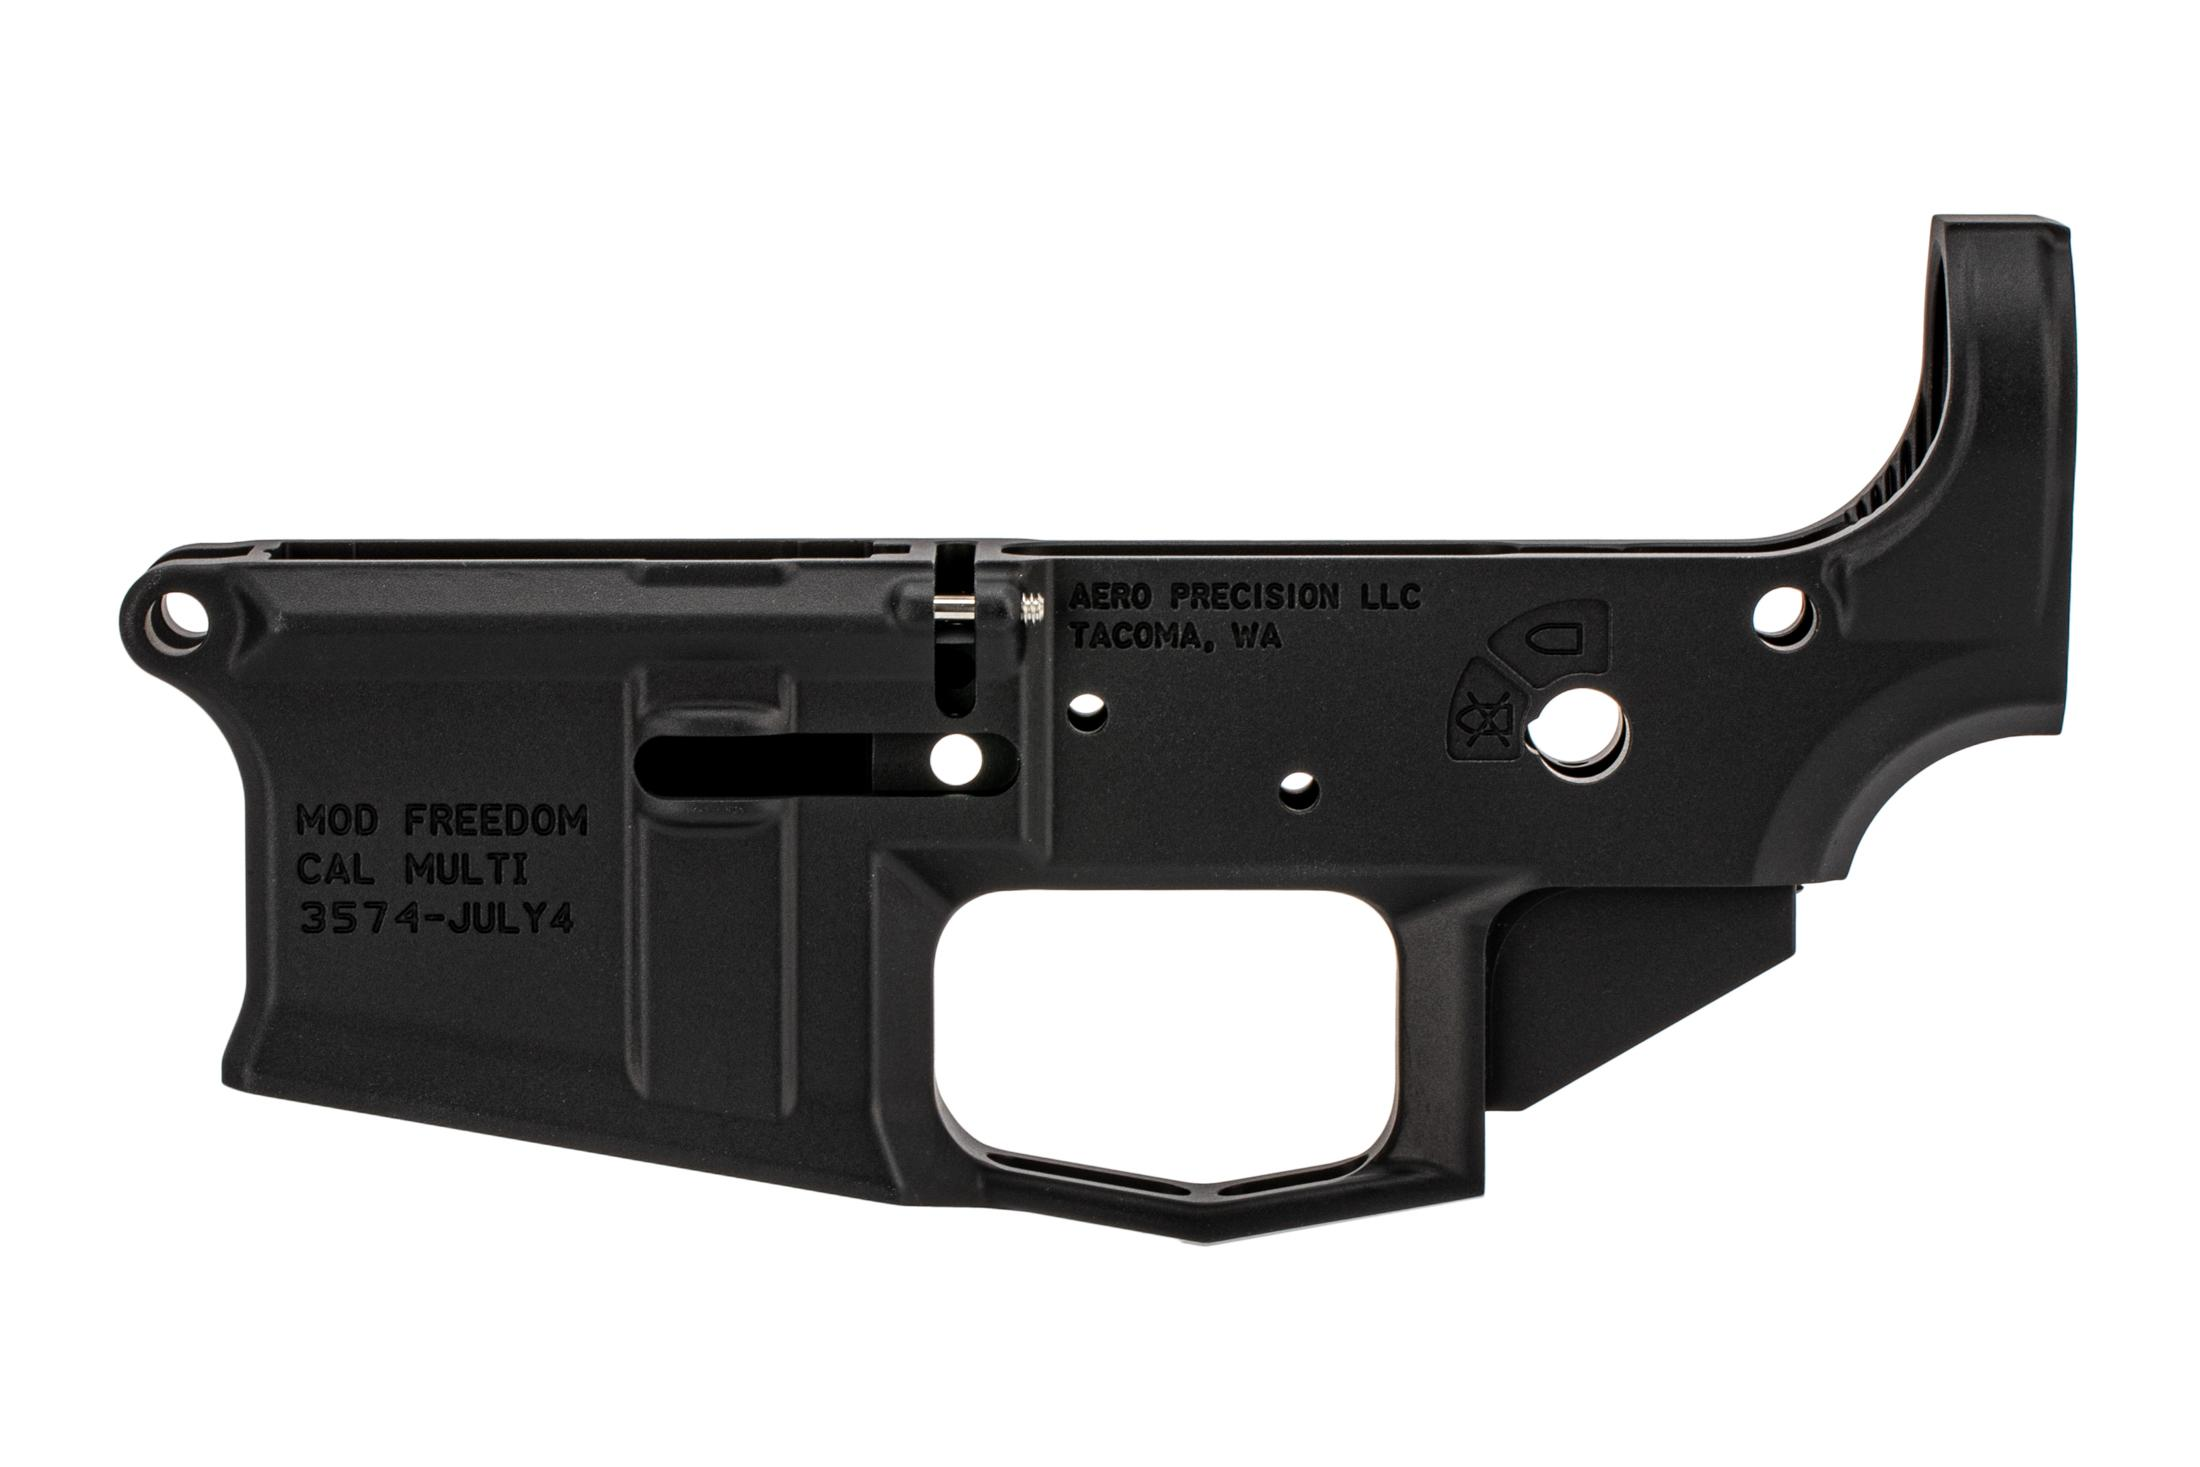 Aero special edition stripped lower for AR-15 features a flag engraving and black anodized finish